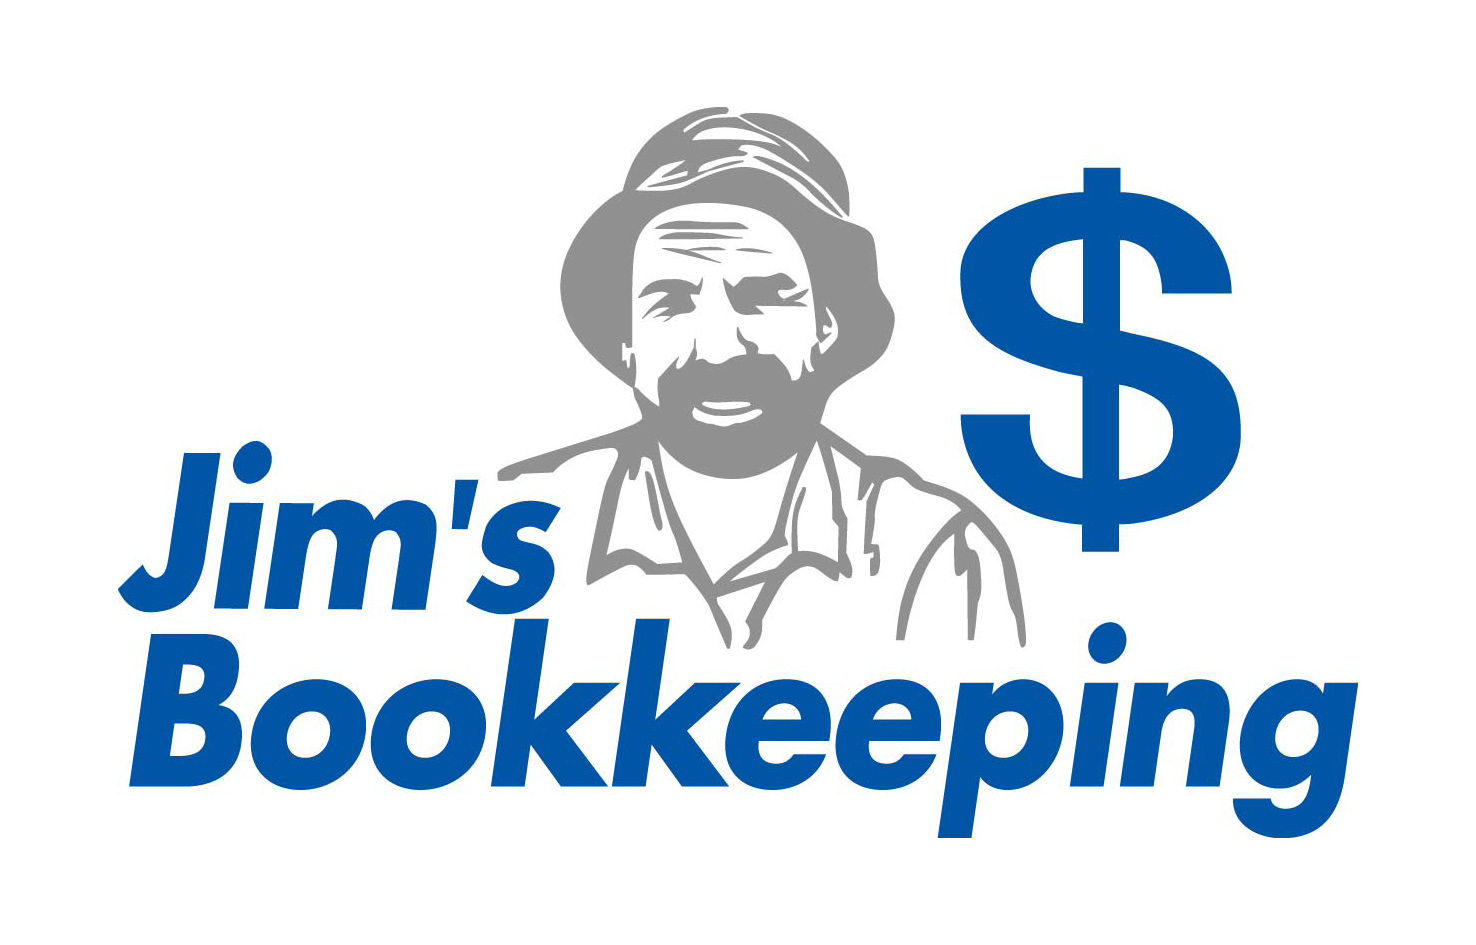 Jims Bookkeeping